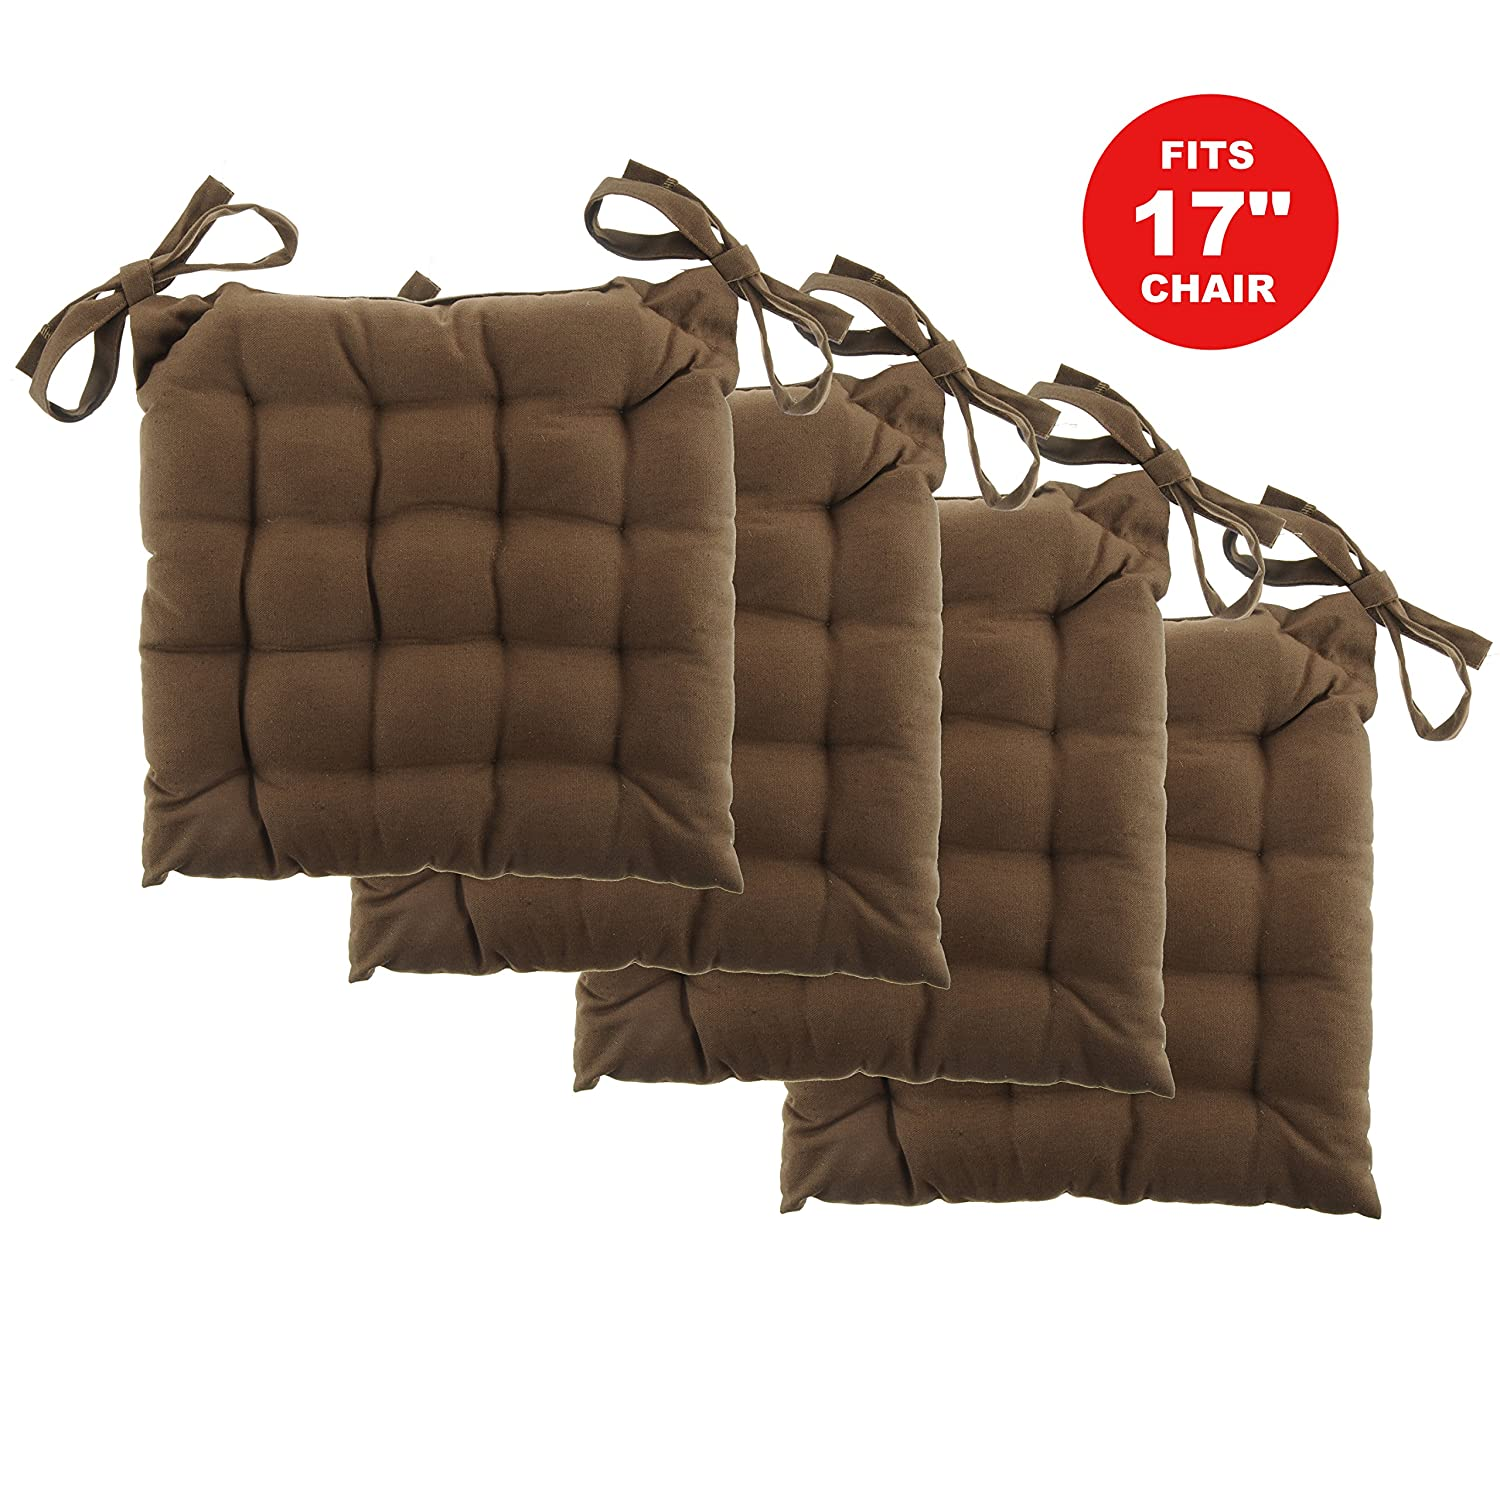 """White Dove Chair Pads - Cotton Canvas - Value 4 Pack - Fits 17"""" Chair - Solid Color - Classic Design, by Unity (French Toast)"""